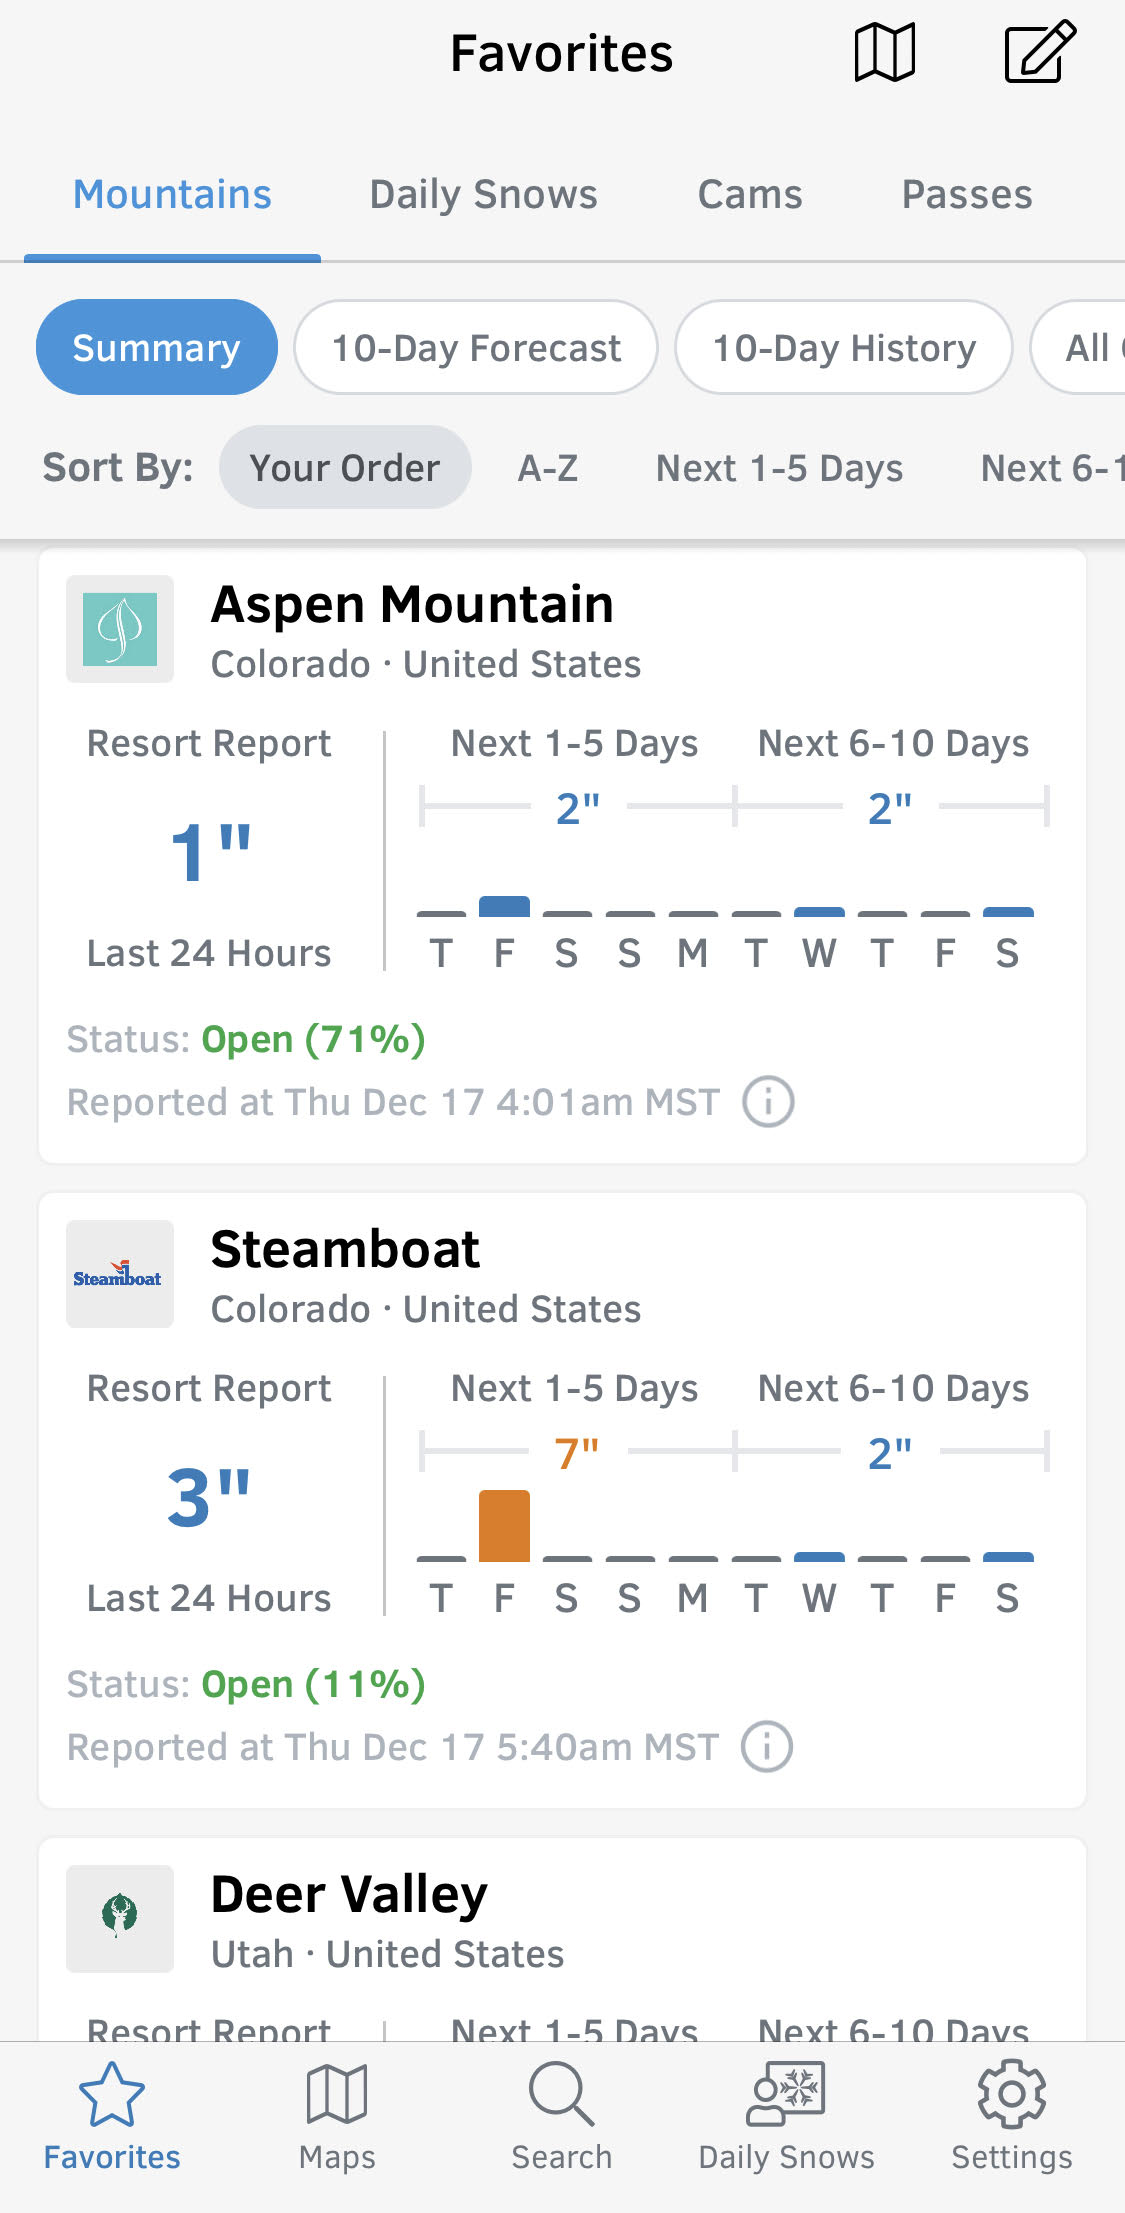 opensnow-aspen-steamboat-deervalley